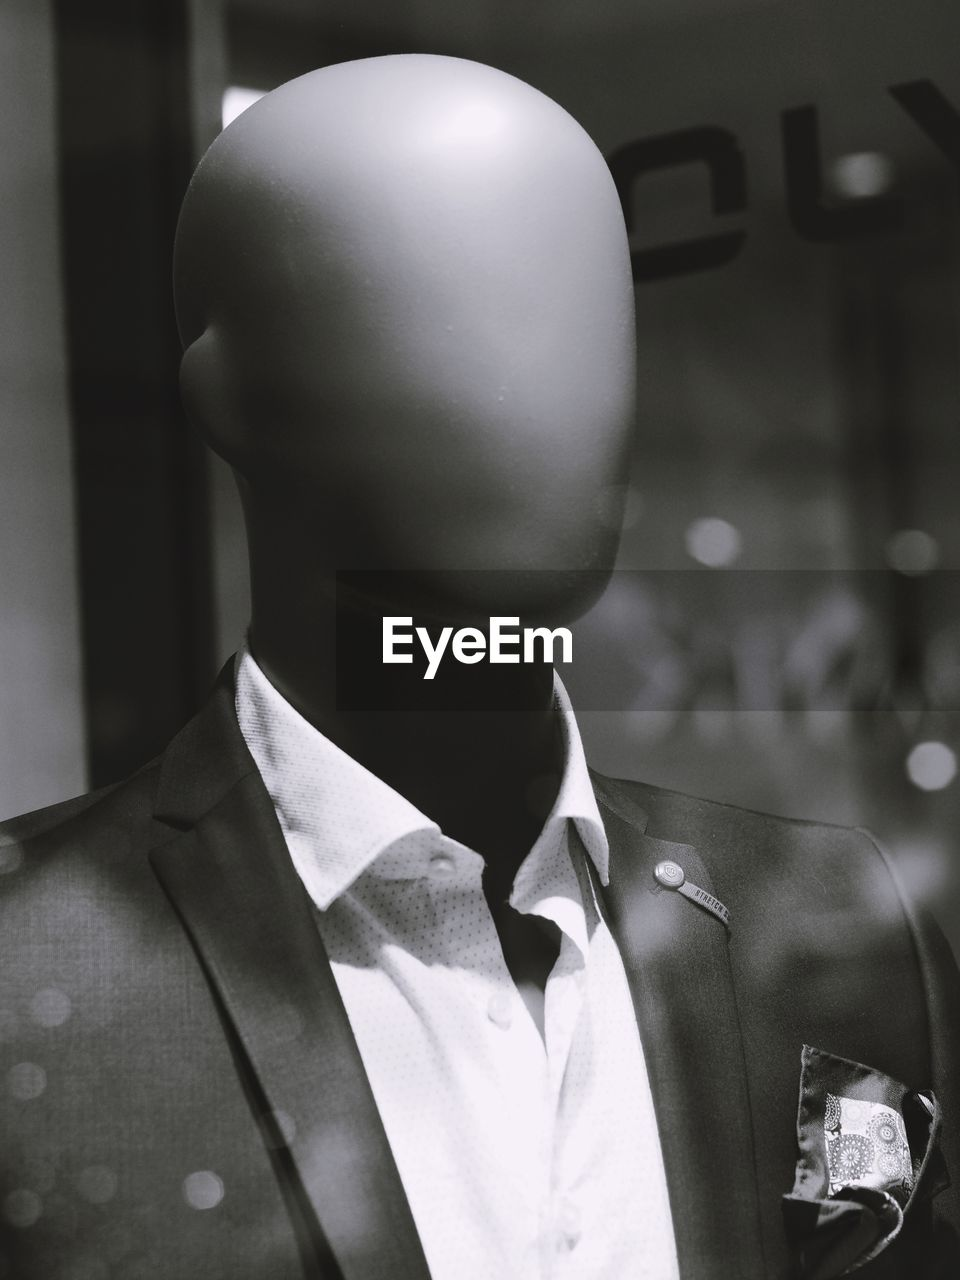 clothing, one person, mannequin, focus on foreground, human representation, men, headshot, indoors, business, portrait, representation, necktie, retail display, suit, real people, male likeness, well-dressed, close-up, menswear, uniform